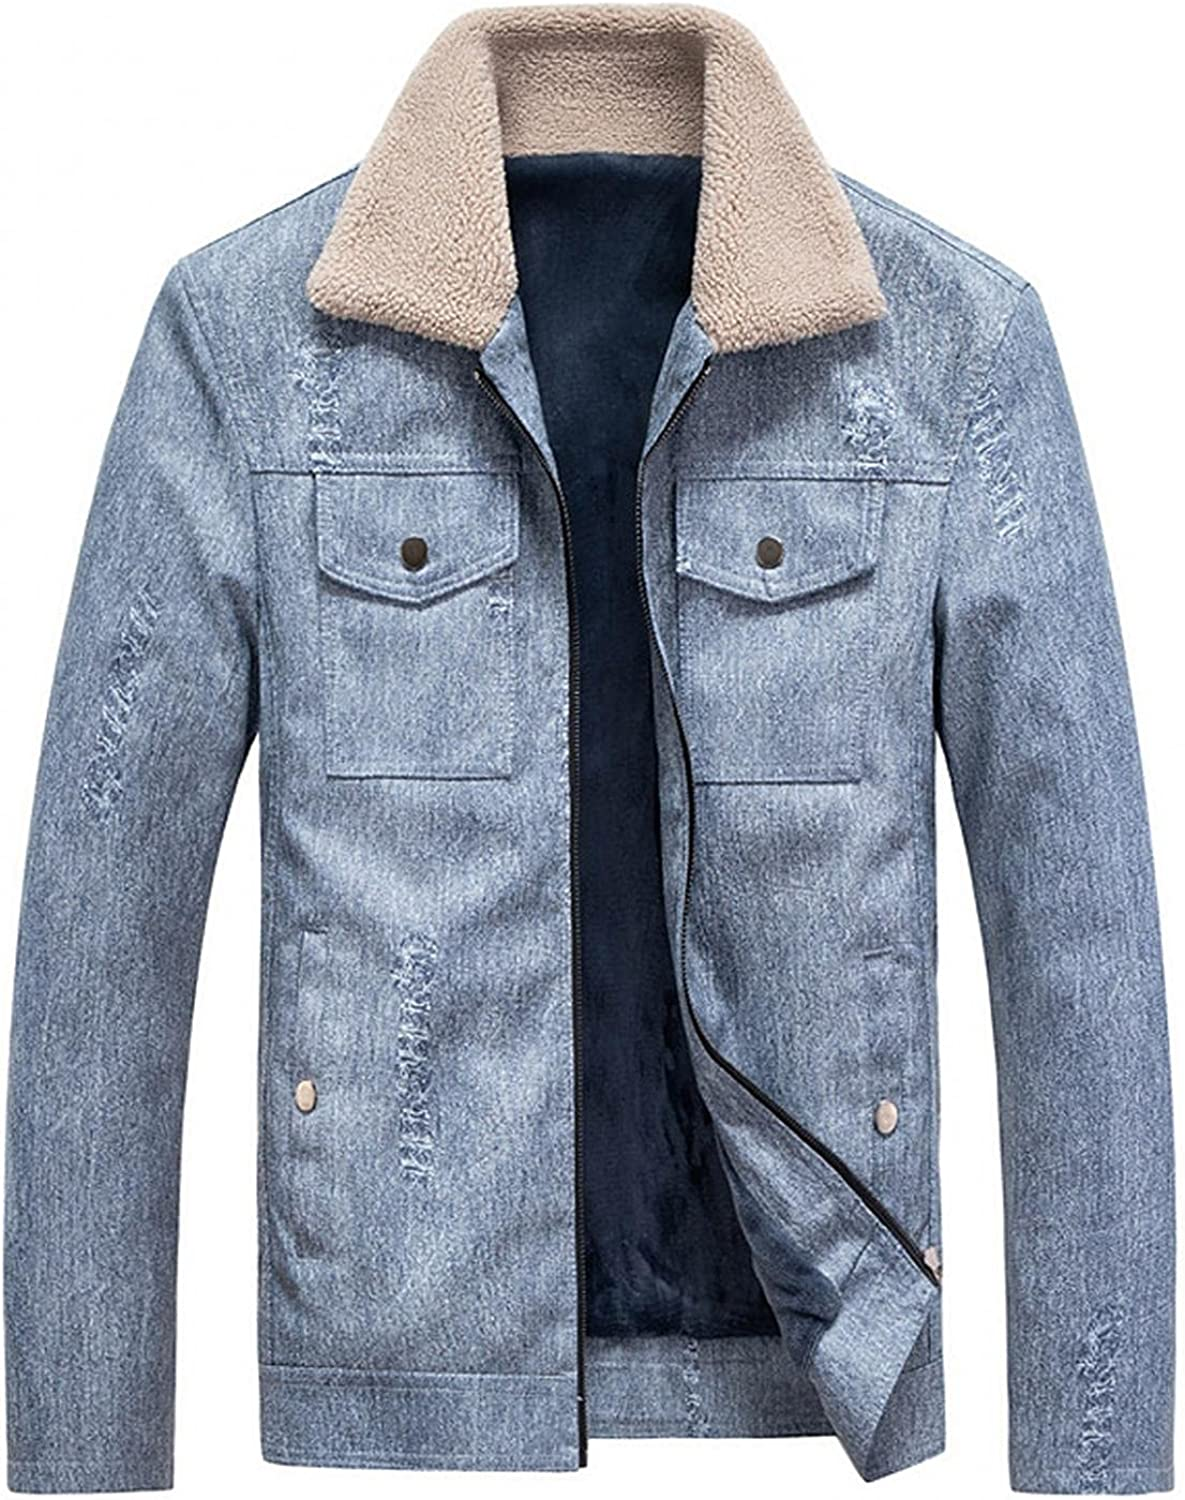 Stoota Men's Gentle Layered Faux Leather Motorcycle Jackets, Stand Collar Quilted Lined Full Zip Warm Thermal Pea Coats